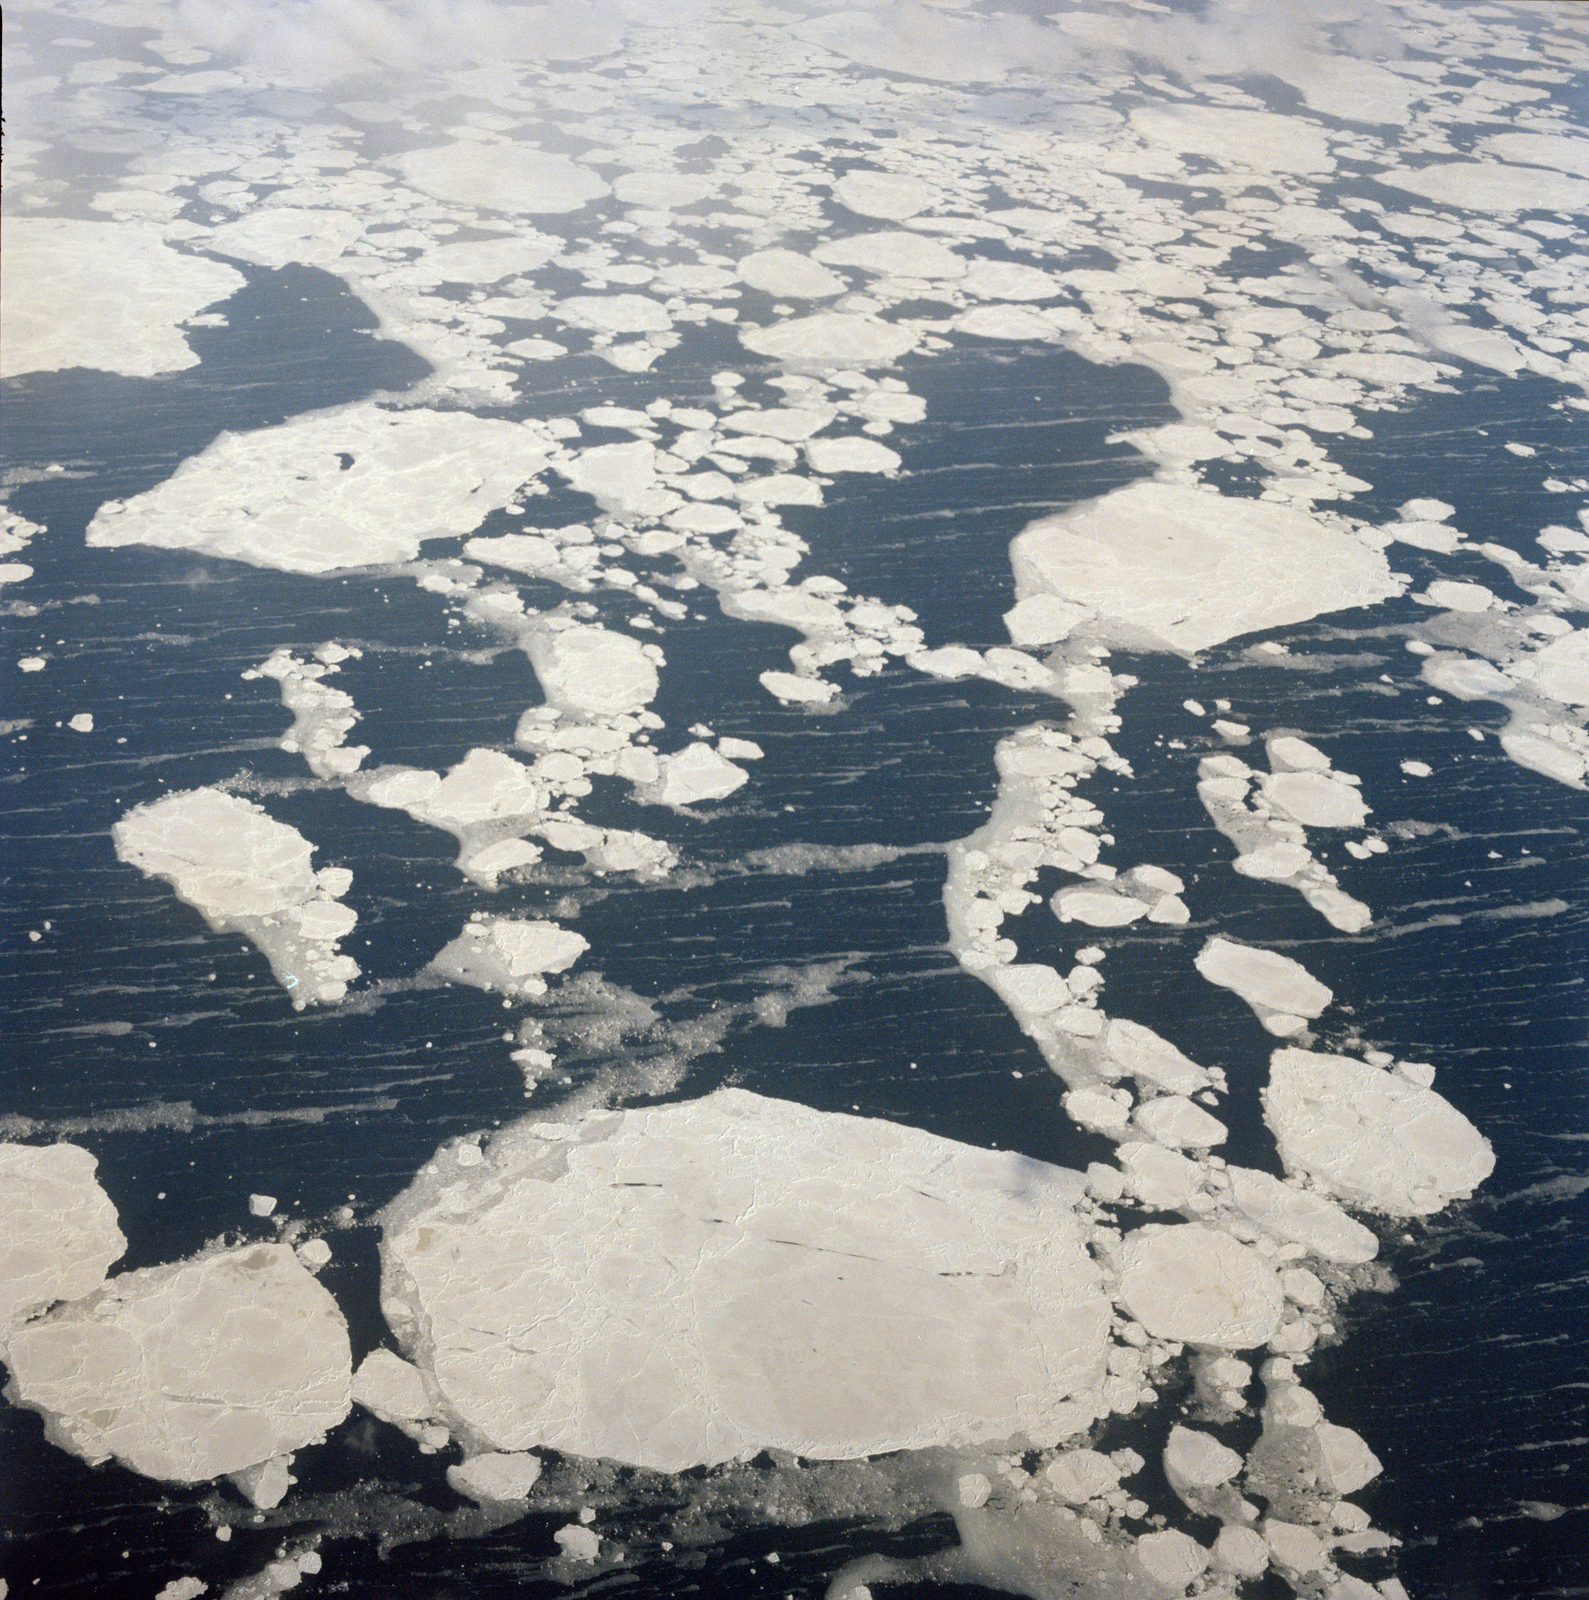 ST LAWRENCE SEAWAY SEA ICE EXPERIMENT